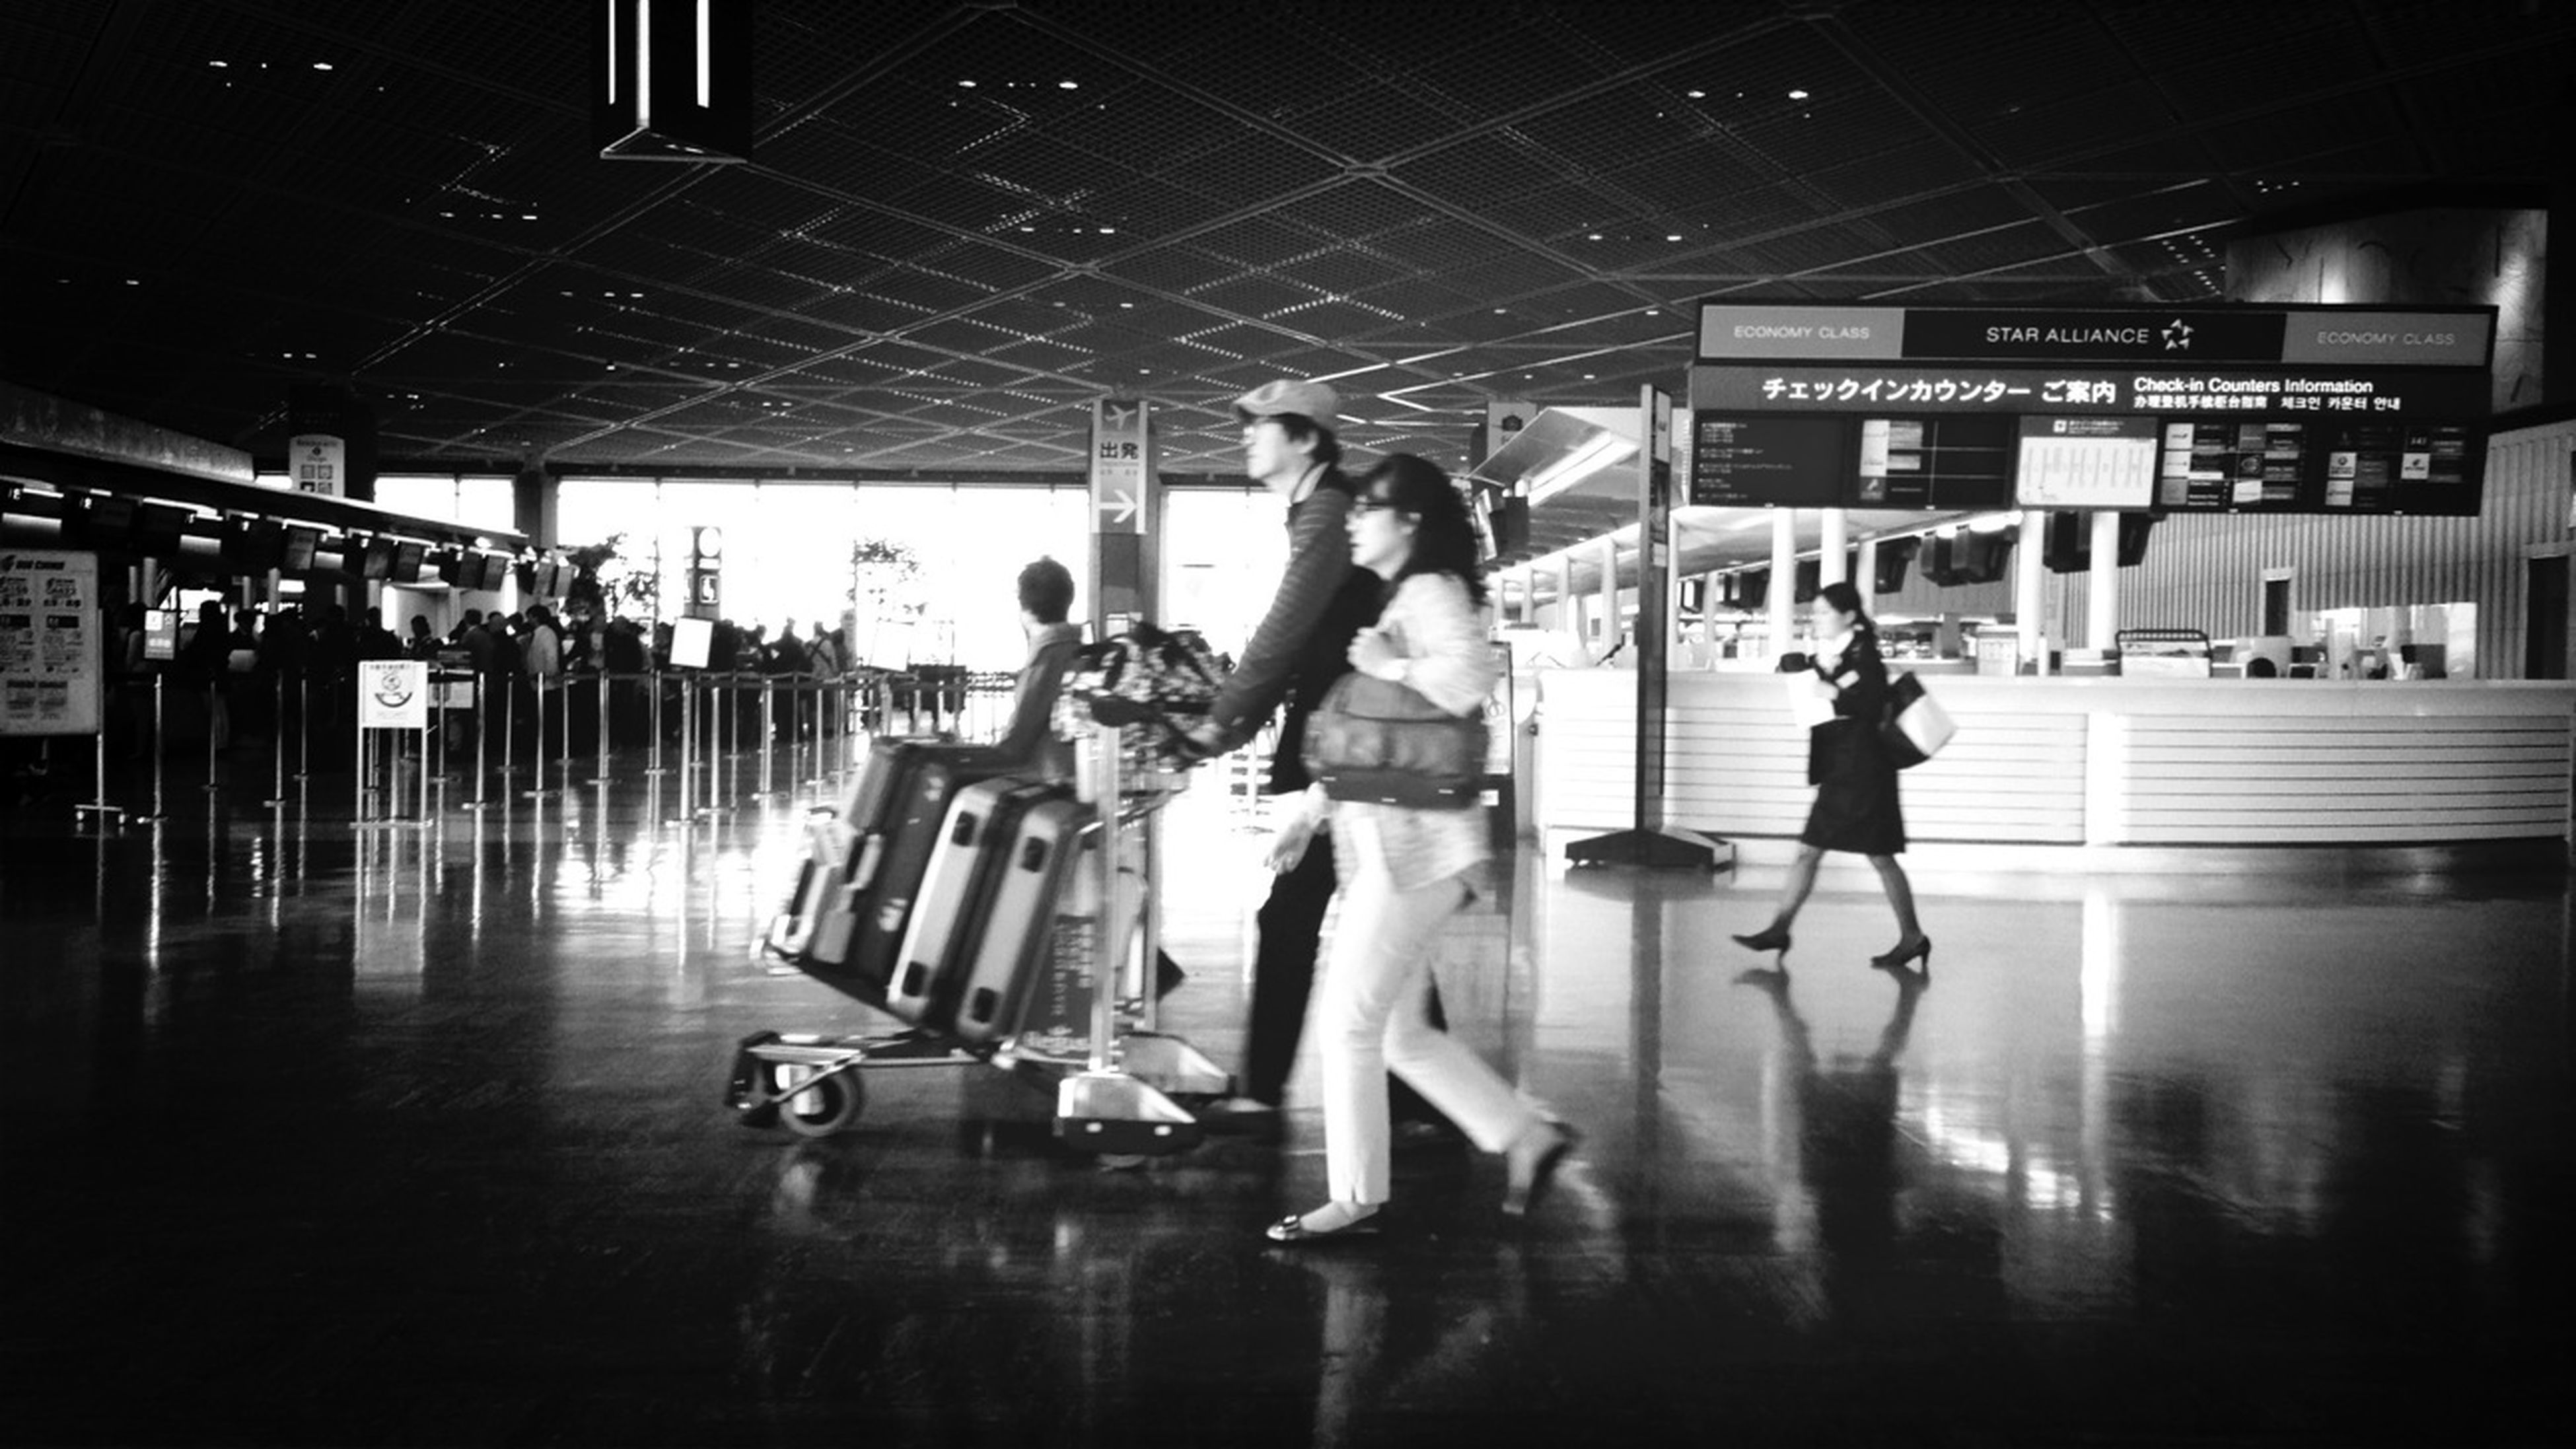 indoors, lifestyles, men, full length, leisure activity, illuminated, person, walking, built structure, architecture, reflection, city life, flooring, ceiling, blurred motion, medium group of people, large group of people, night, subway